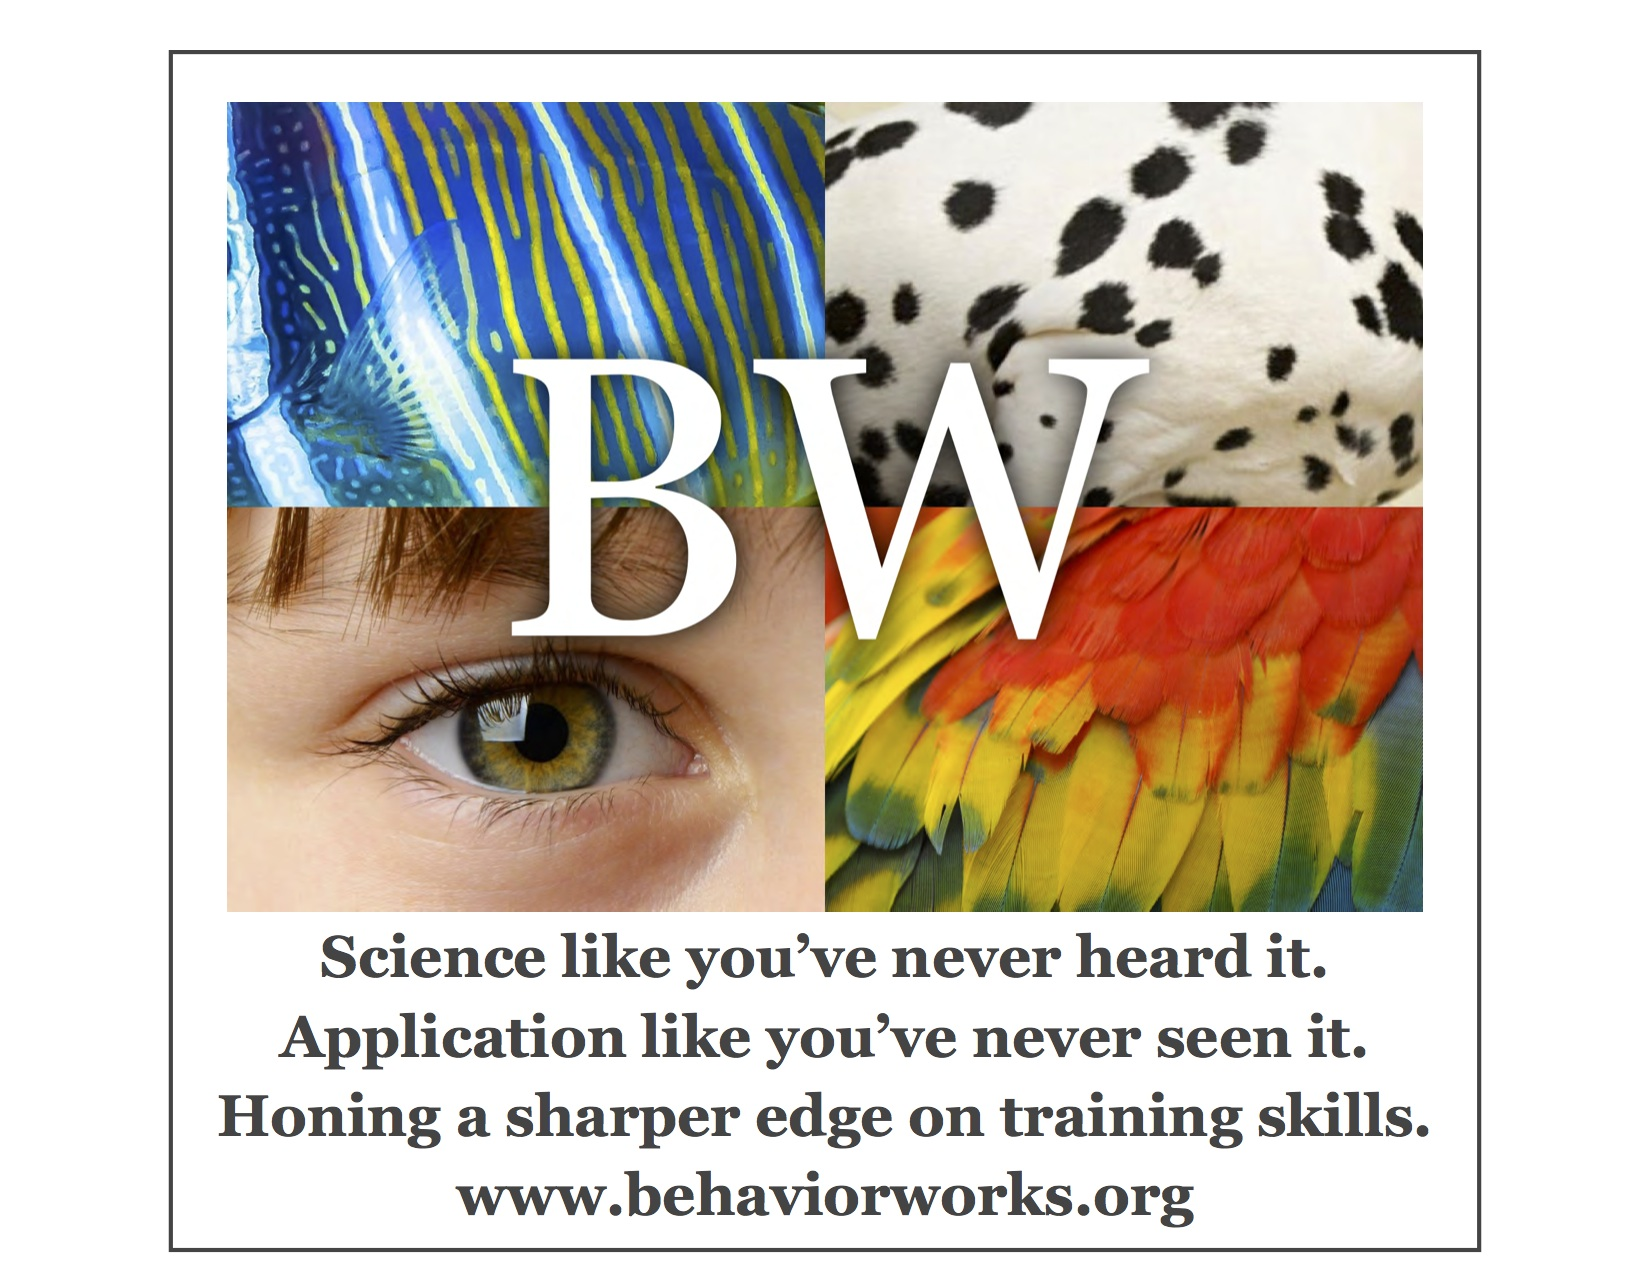 www.behaviorworks.org